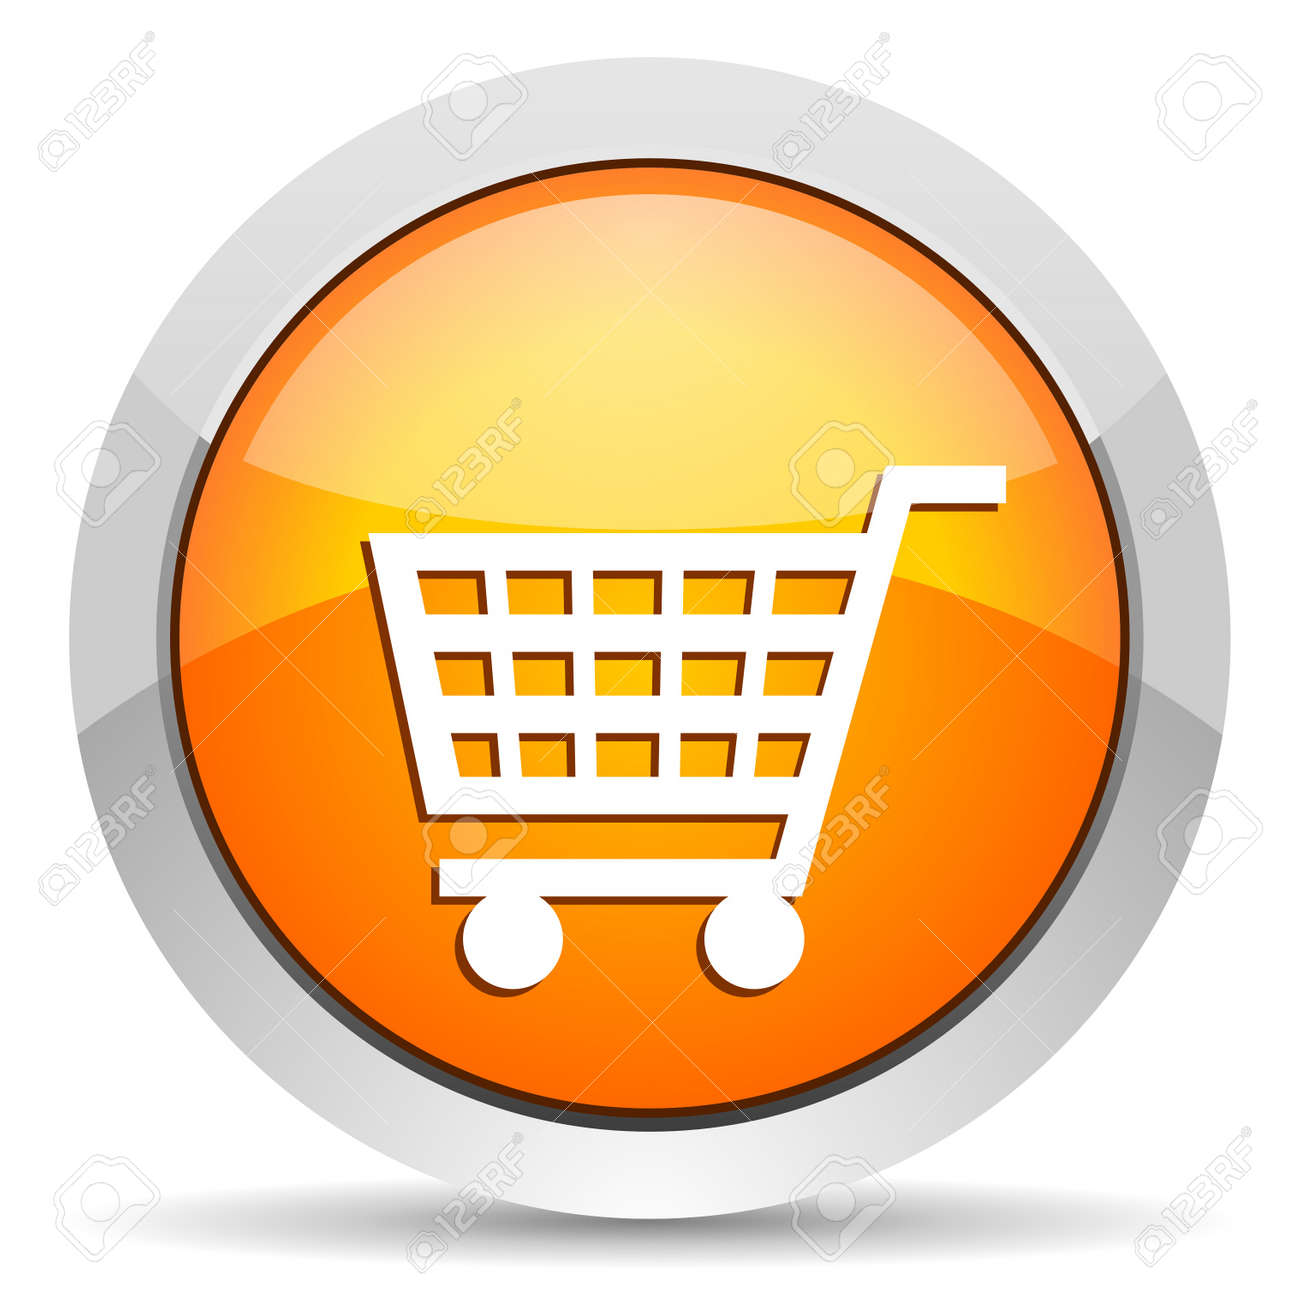 shopping cart icon Stock Photo - 16339524